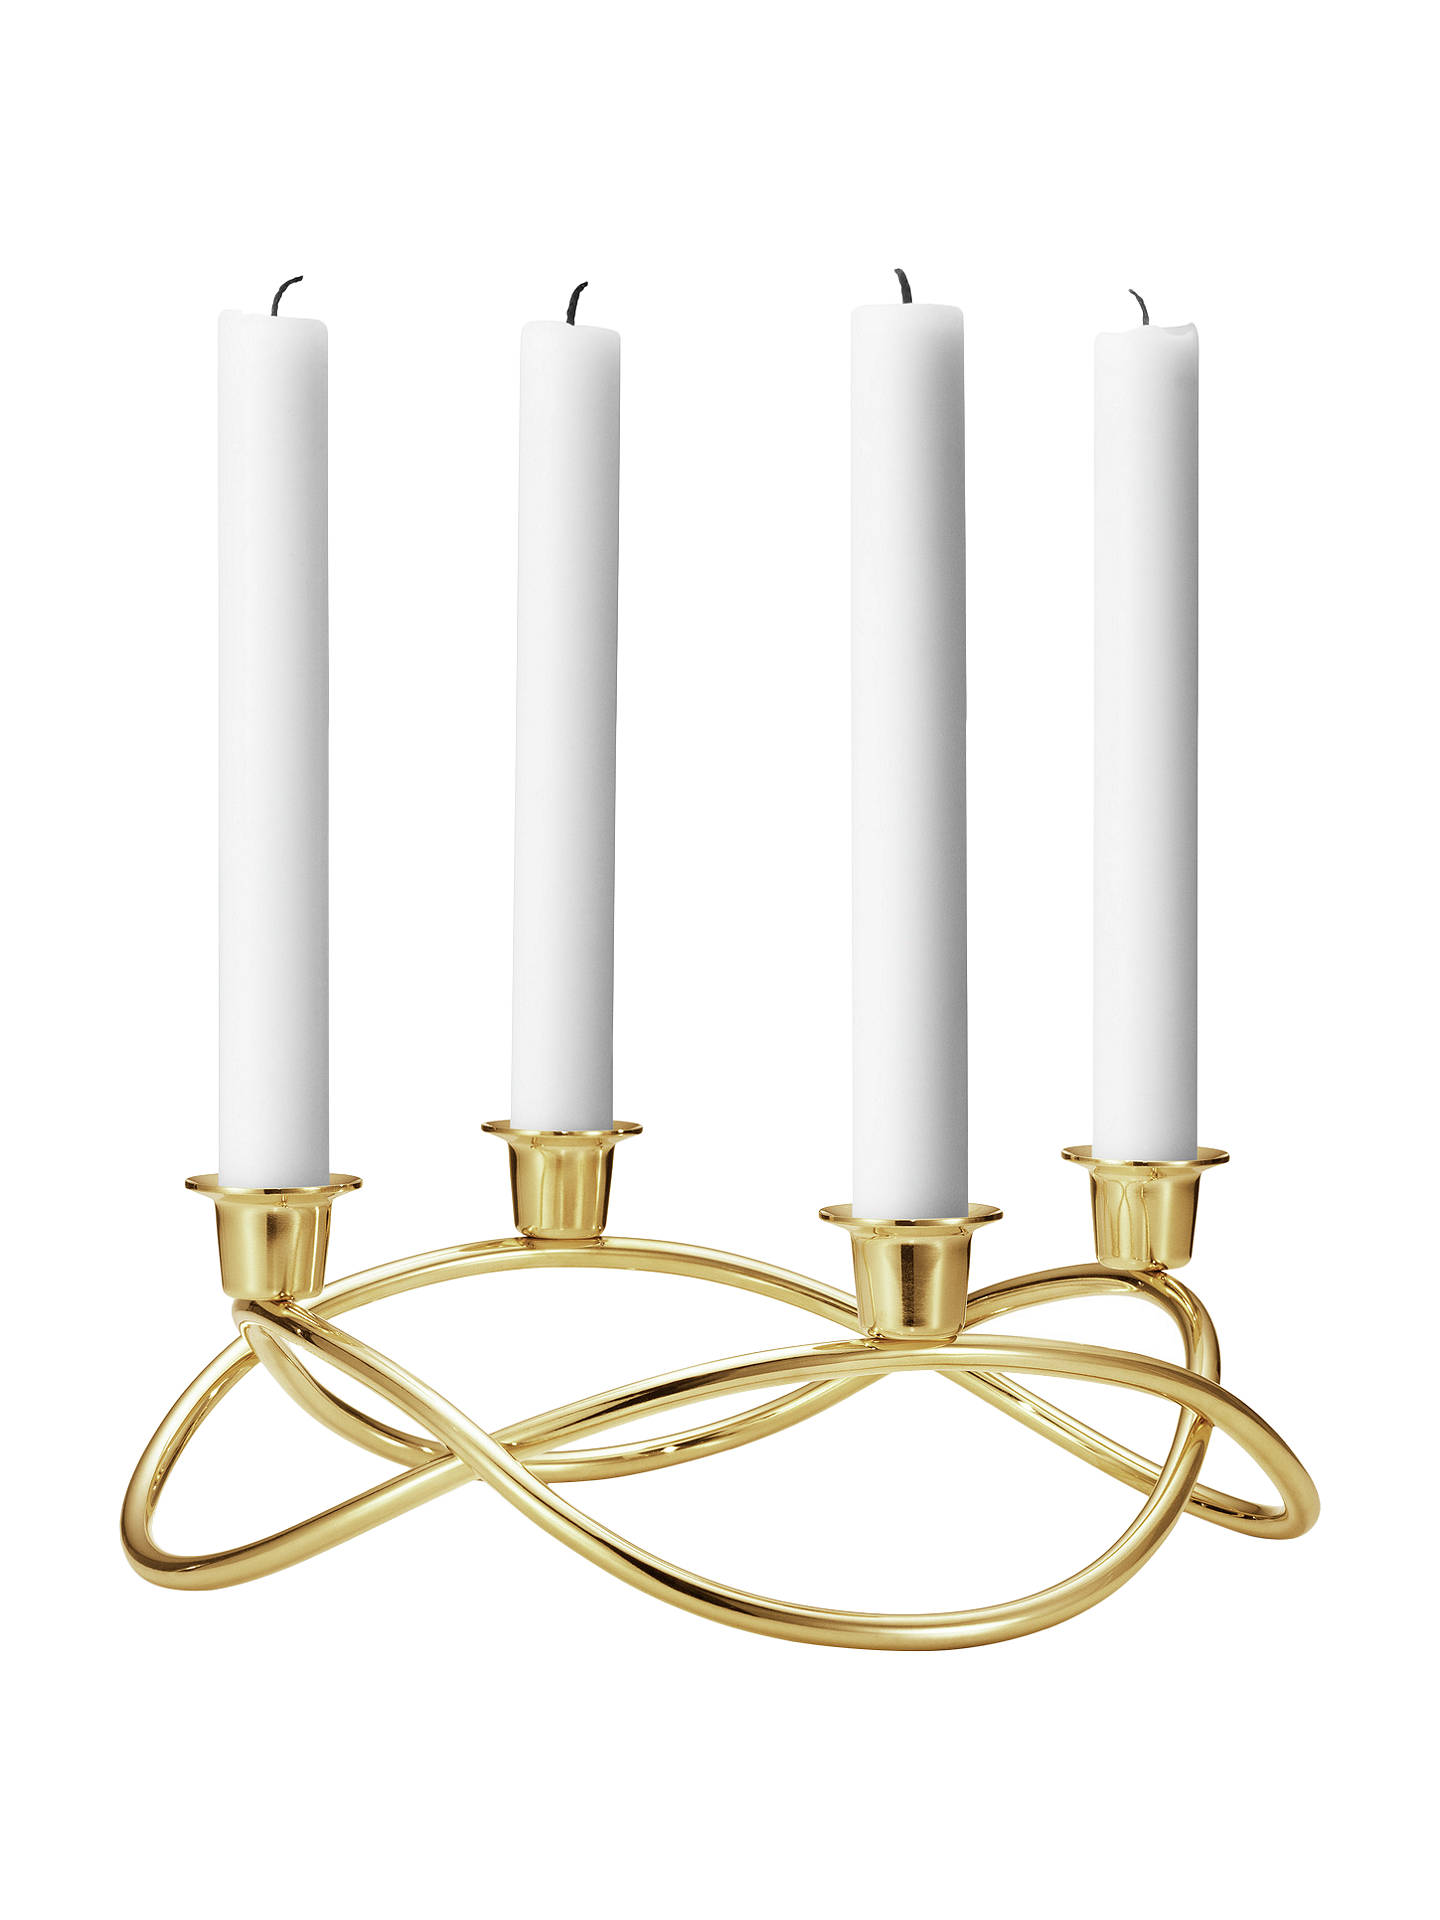 BuyGeorg Jensen Season Gold Plated Candlestick Holder Online at johnlewis.com